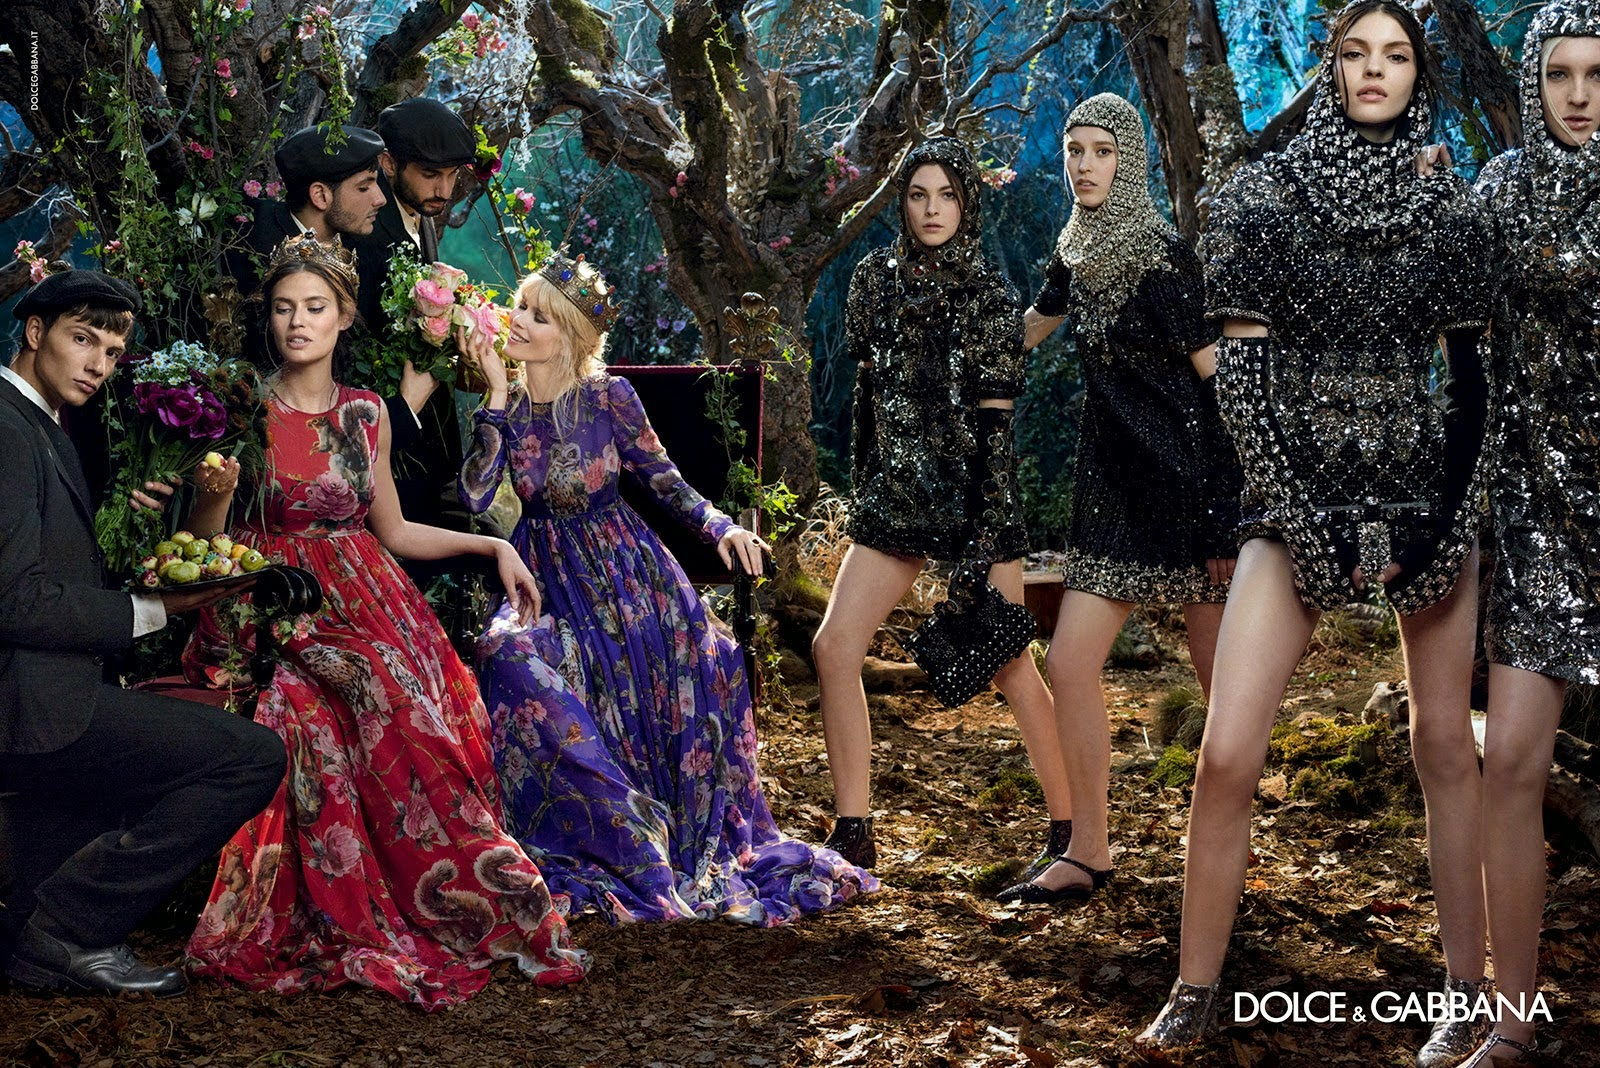 Dolce&Gabbana Fall Winter 2014